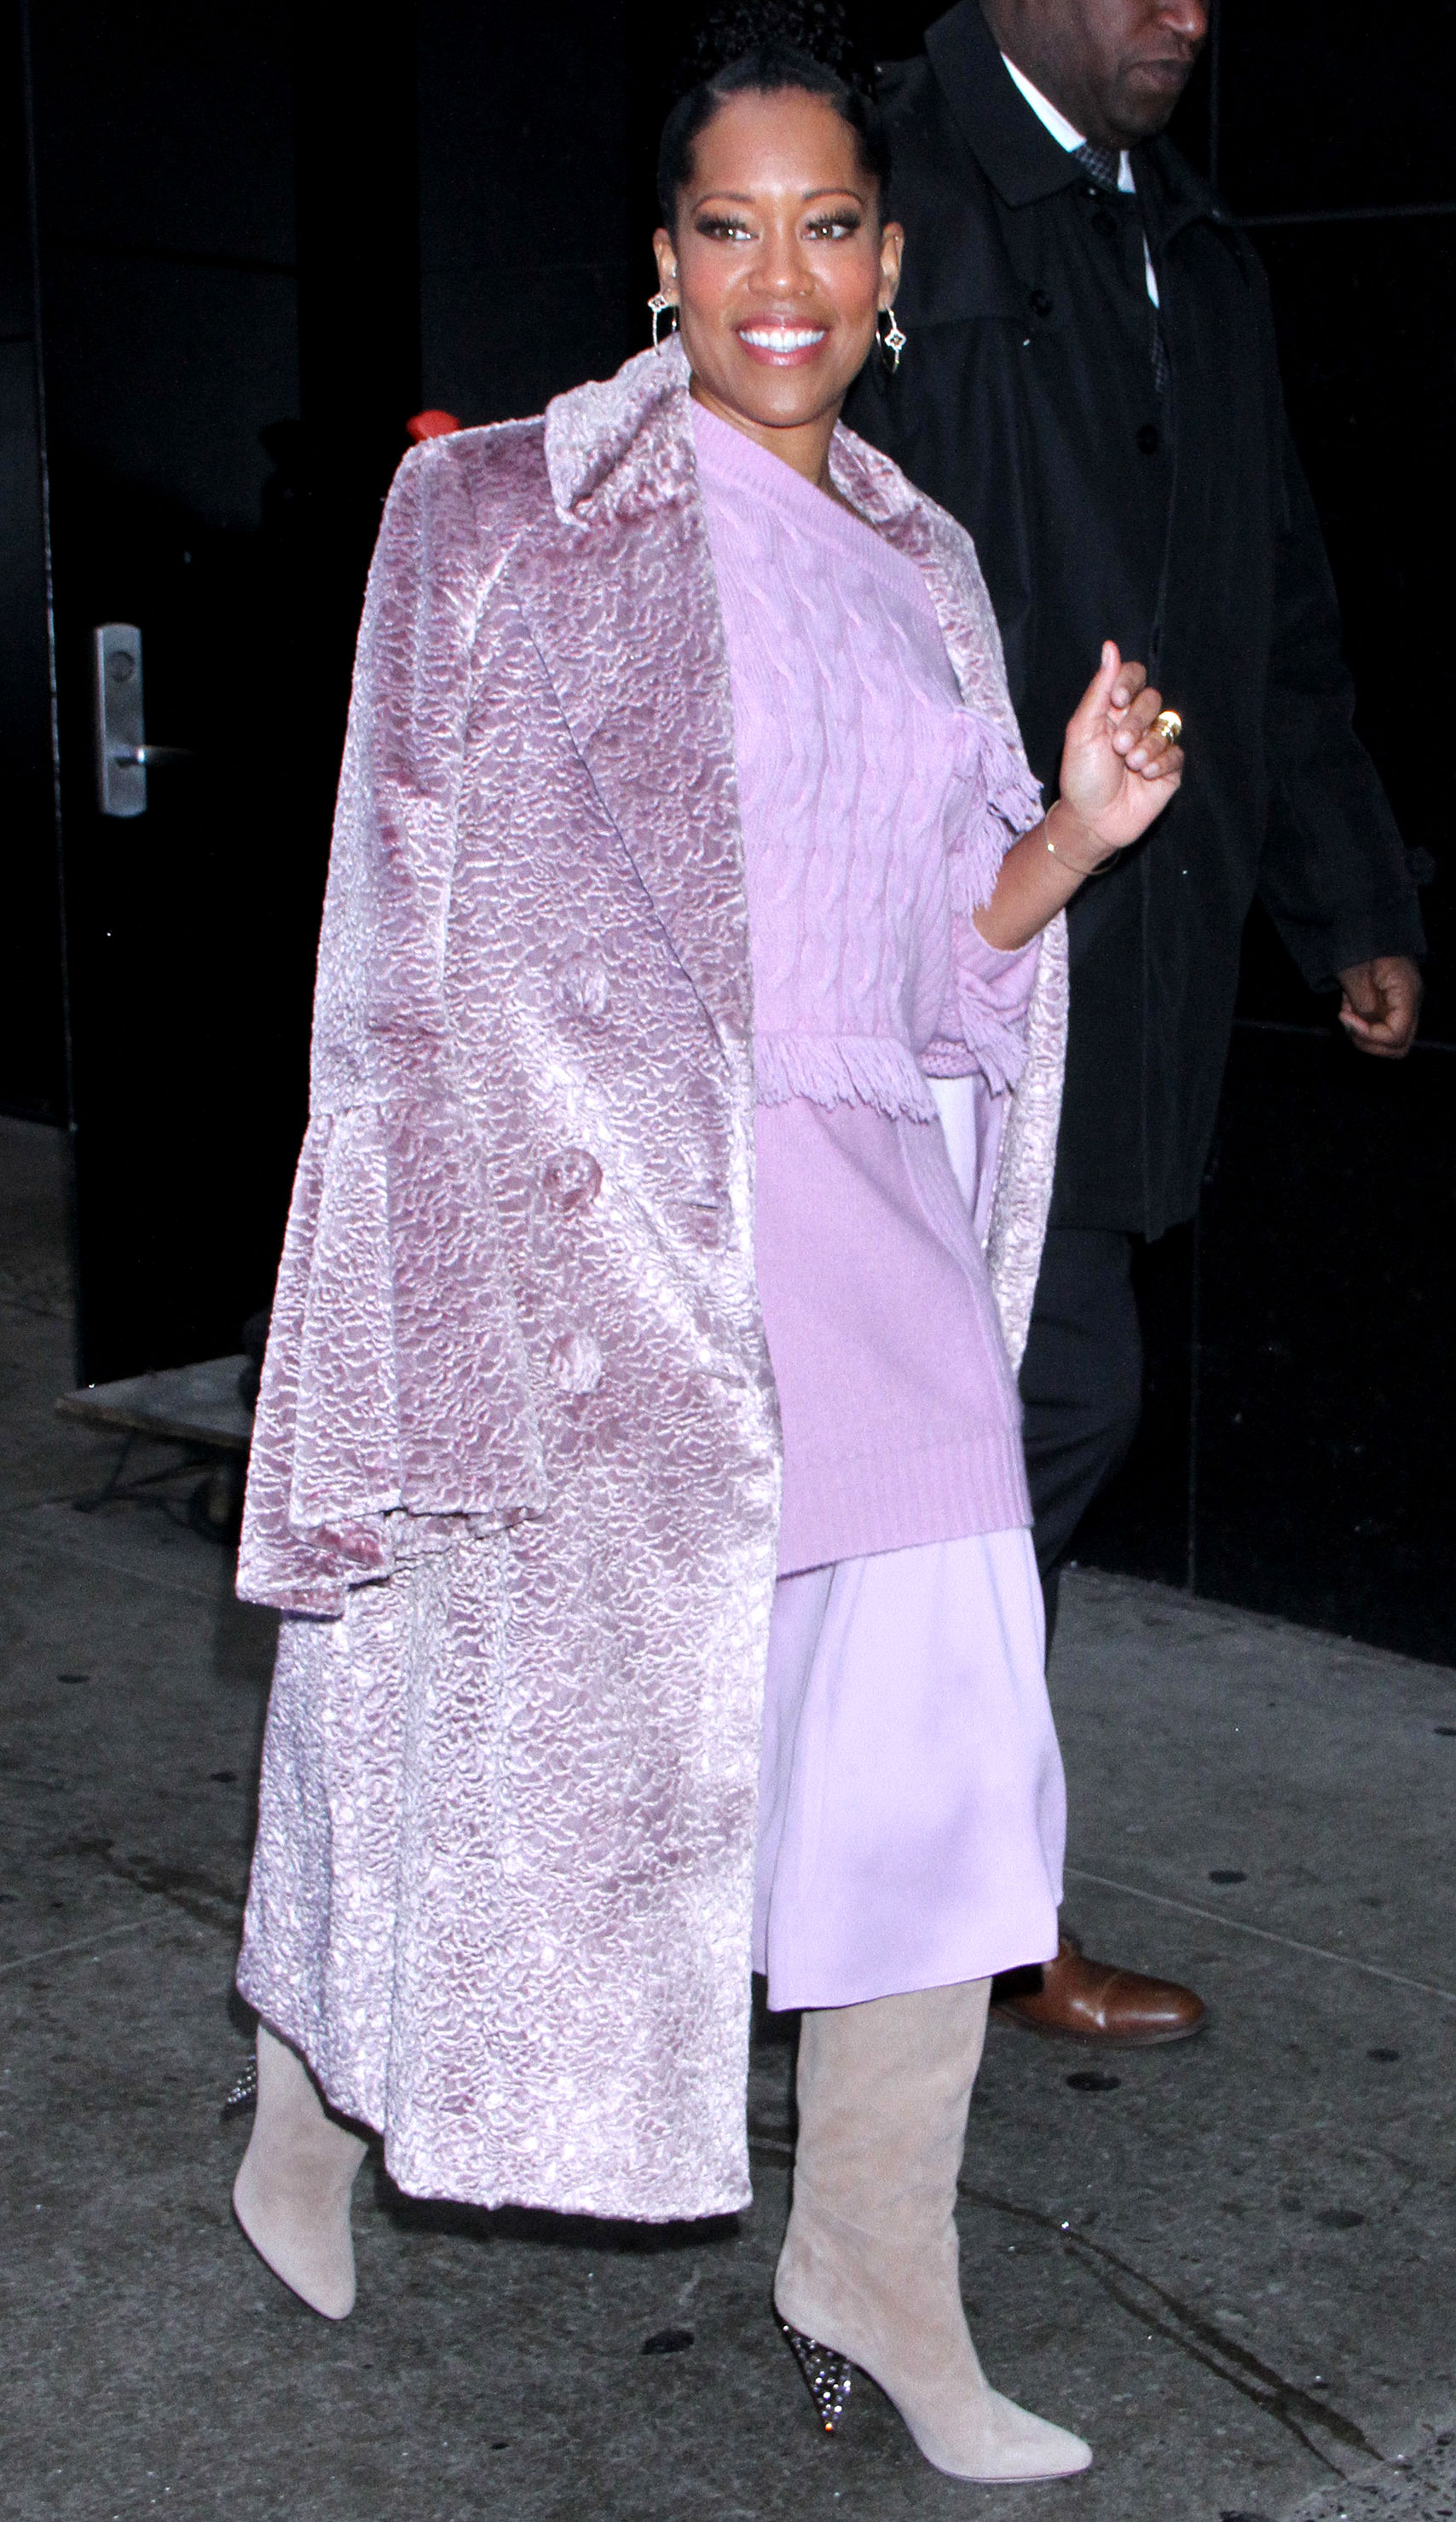 regina-king-purple-lavender-coat - Taking monochrome dressing to new heights, the If Beale Street Could Talk actress mixed various shades of lilac in NYC on Tuesday, December 13, but it's her textured velvet coat that stole the show.